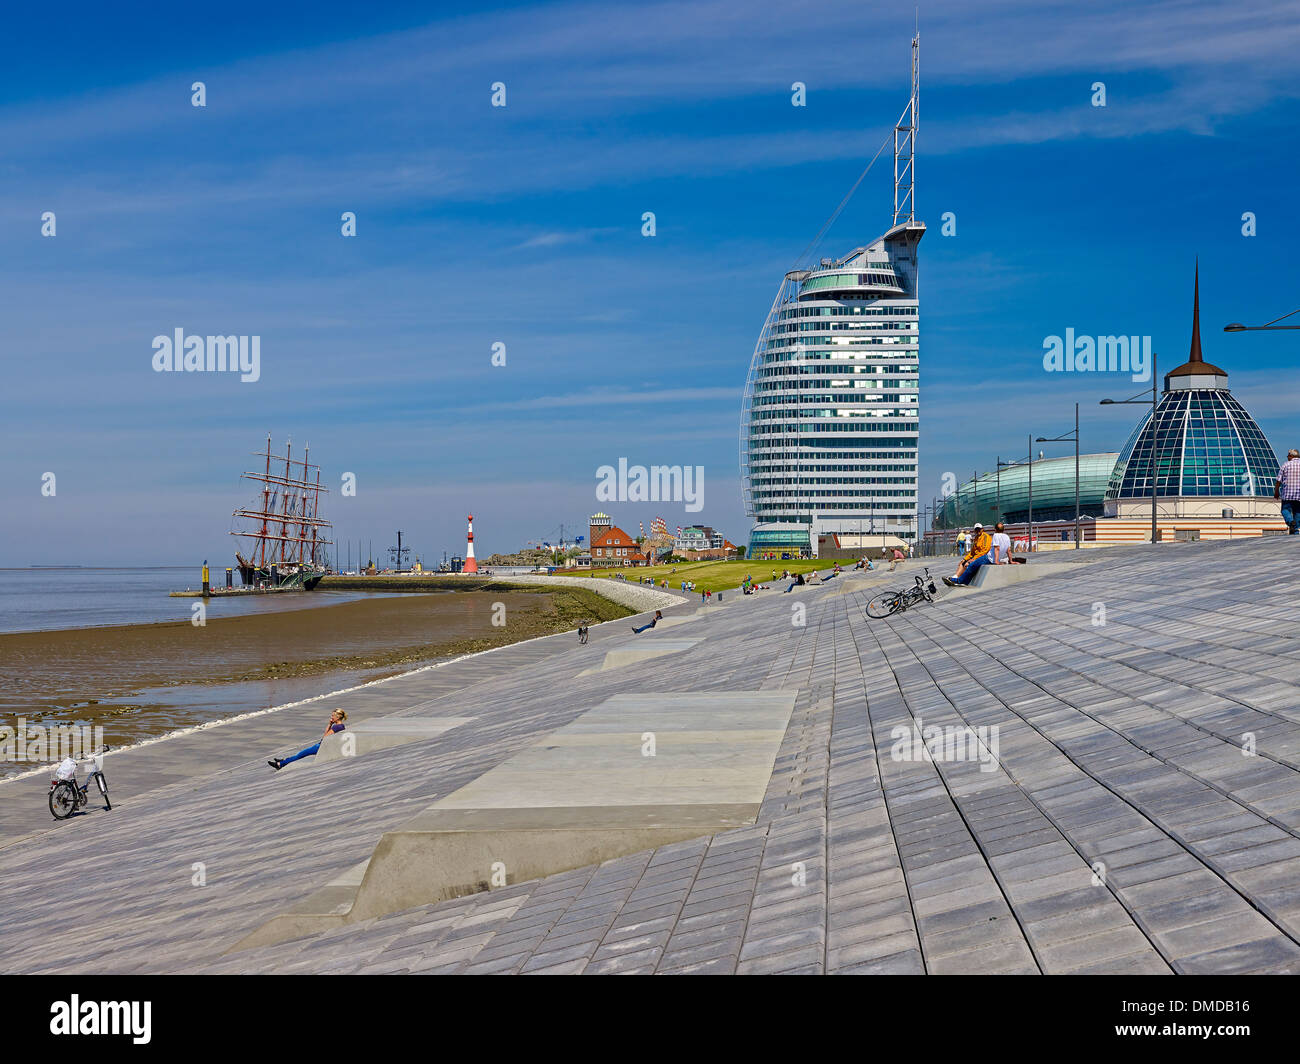 Dike with Atlantic Sail City Hotel and Mediterraneo, Bremerhaven, Bremen, Germany - Stock Image